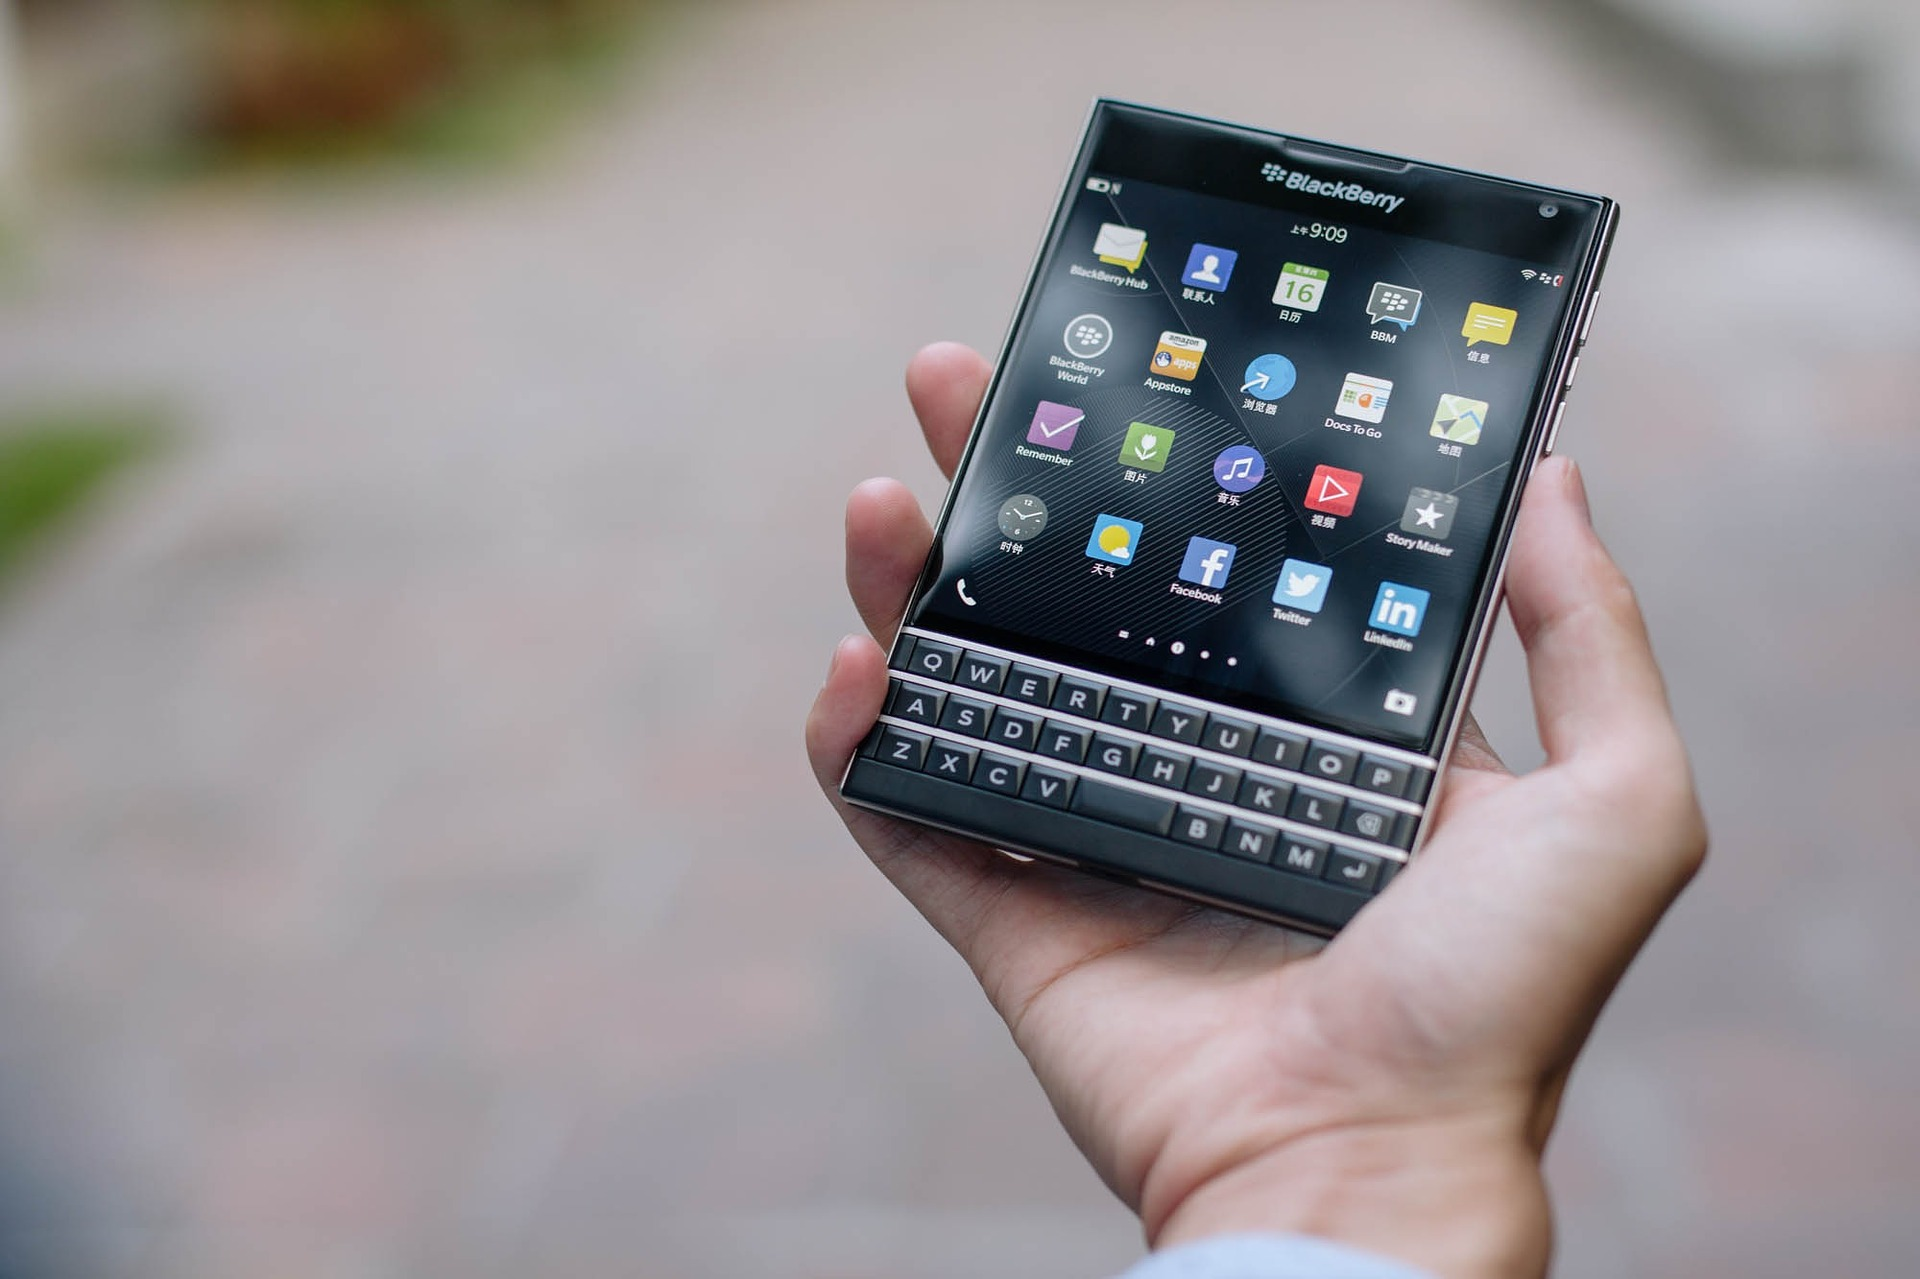 BLACKBERRY BB stock news and analysis